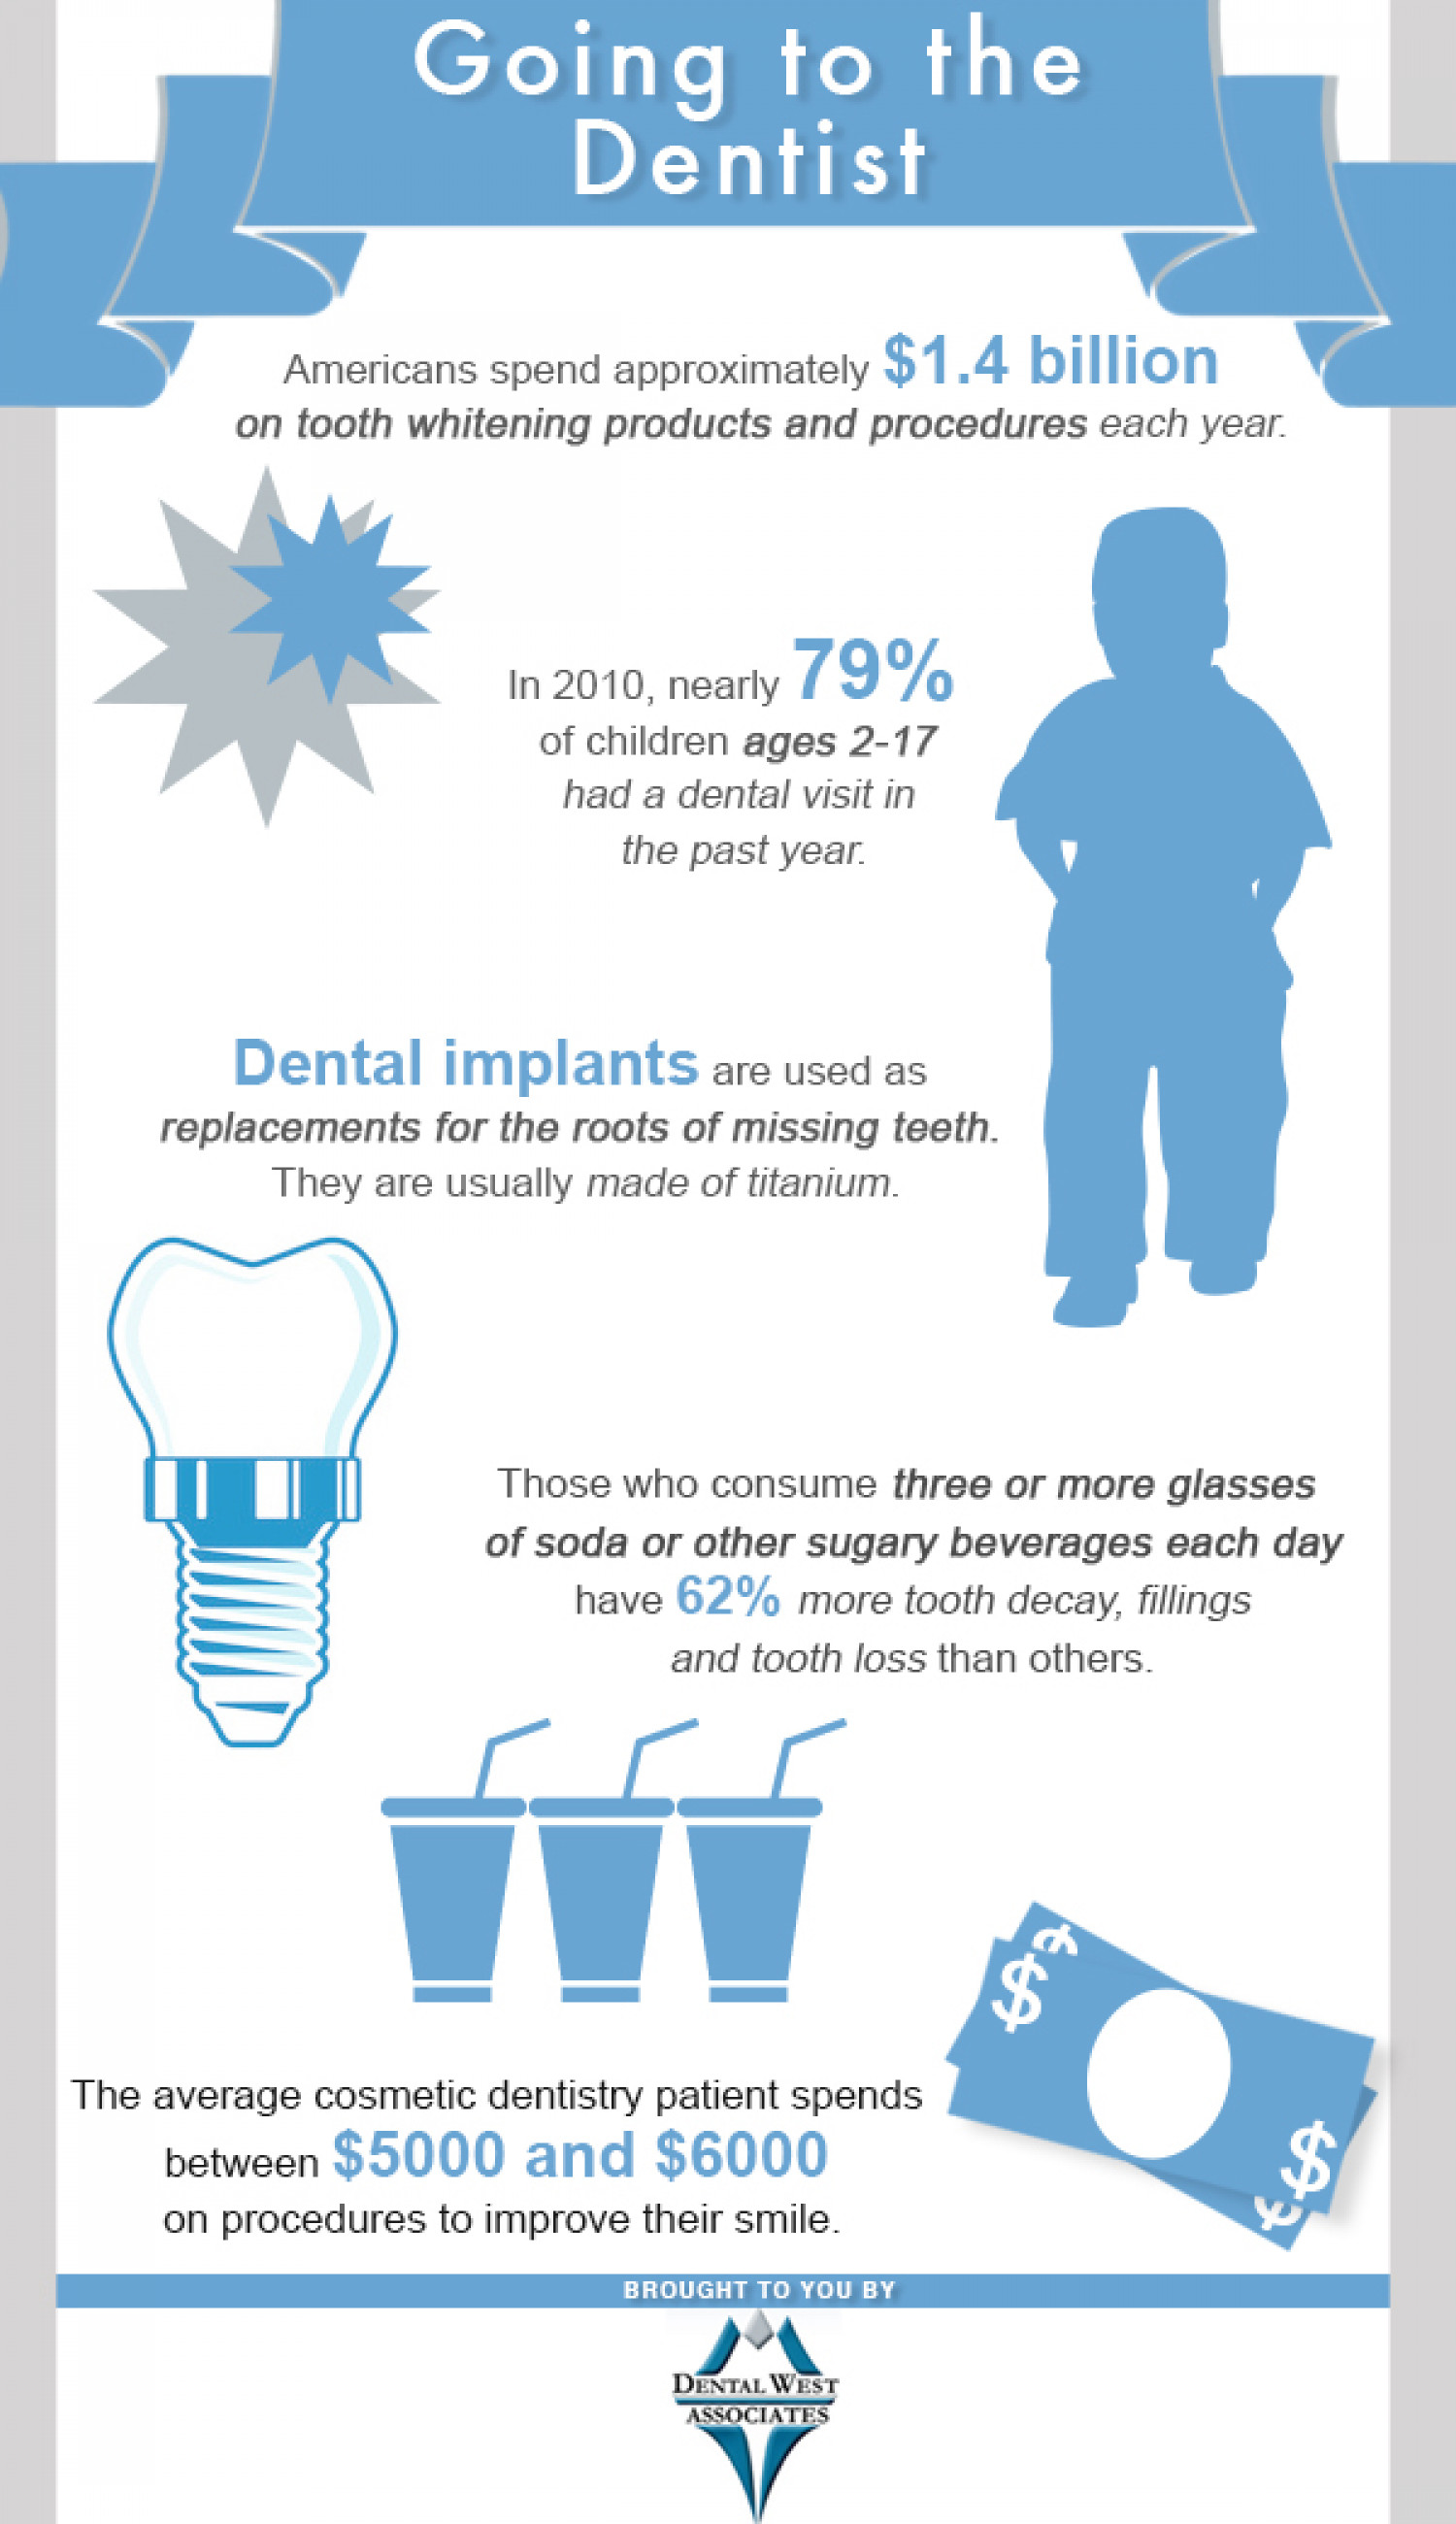 Going to the Dentist Infographic